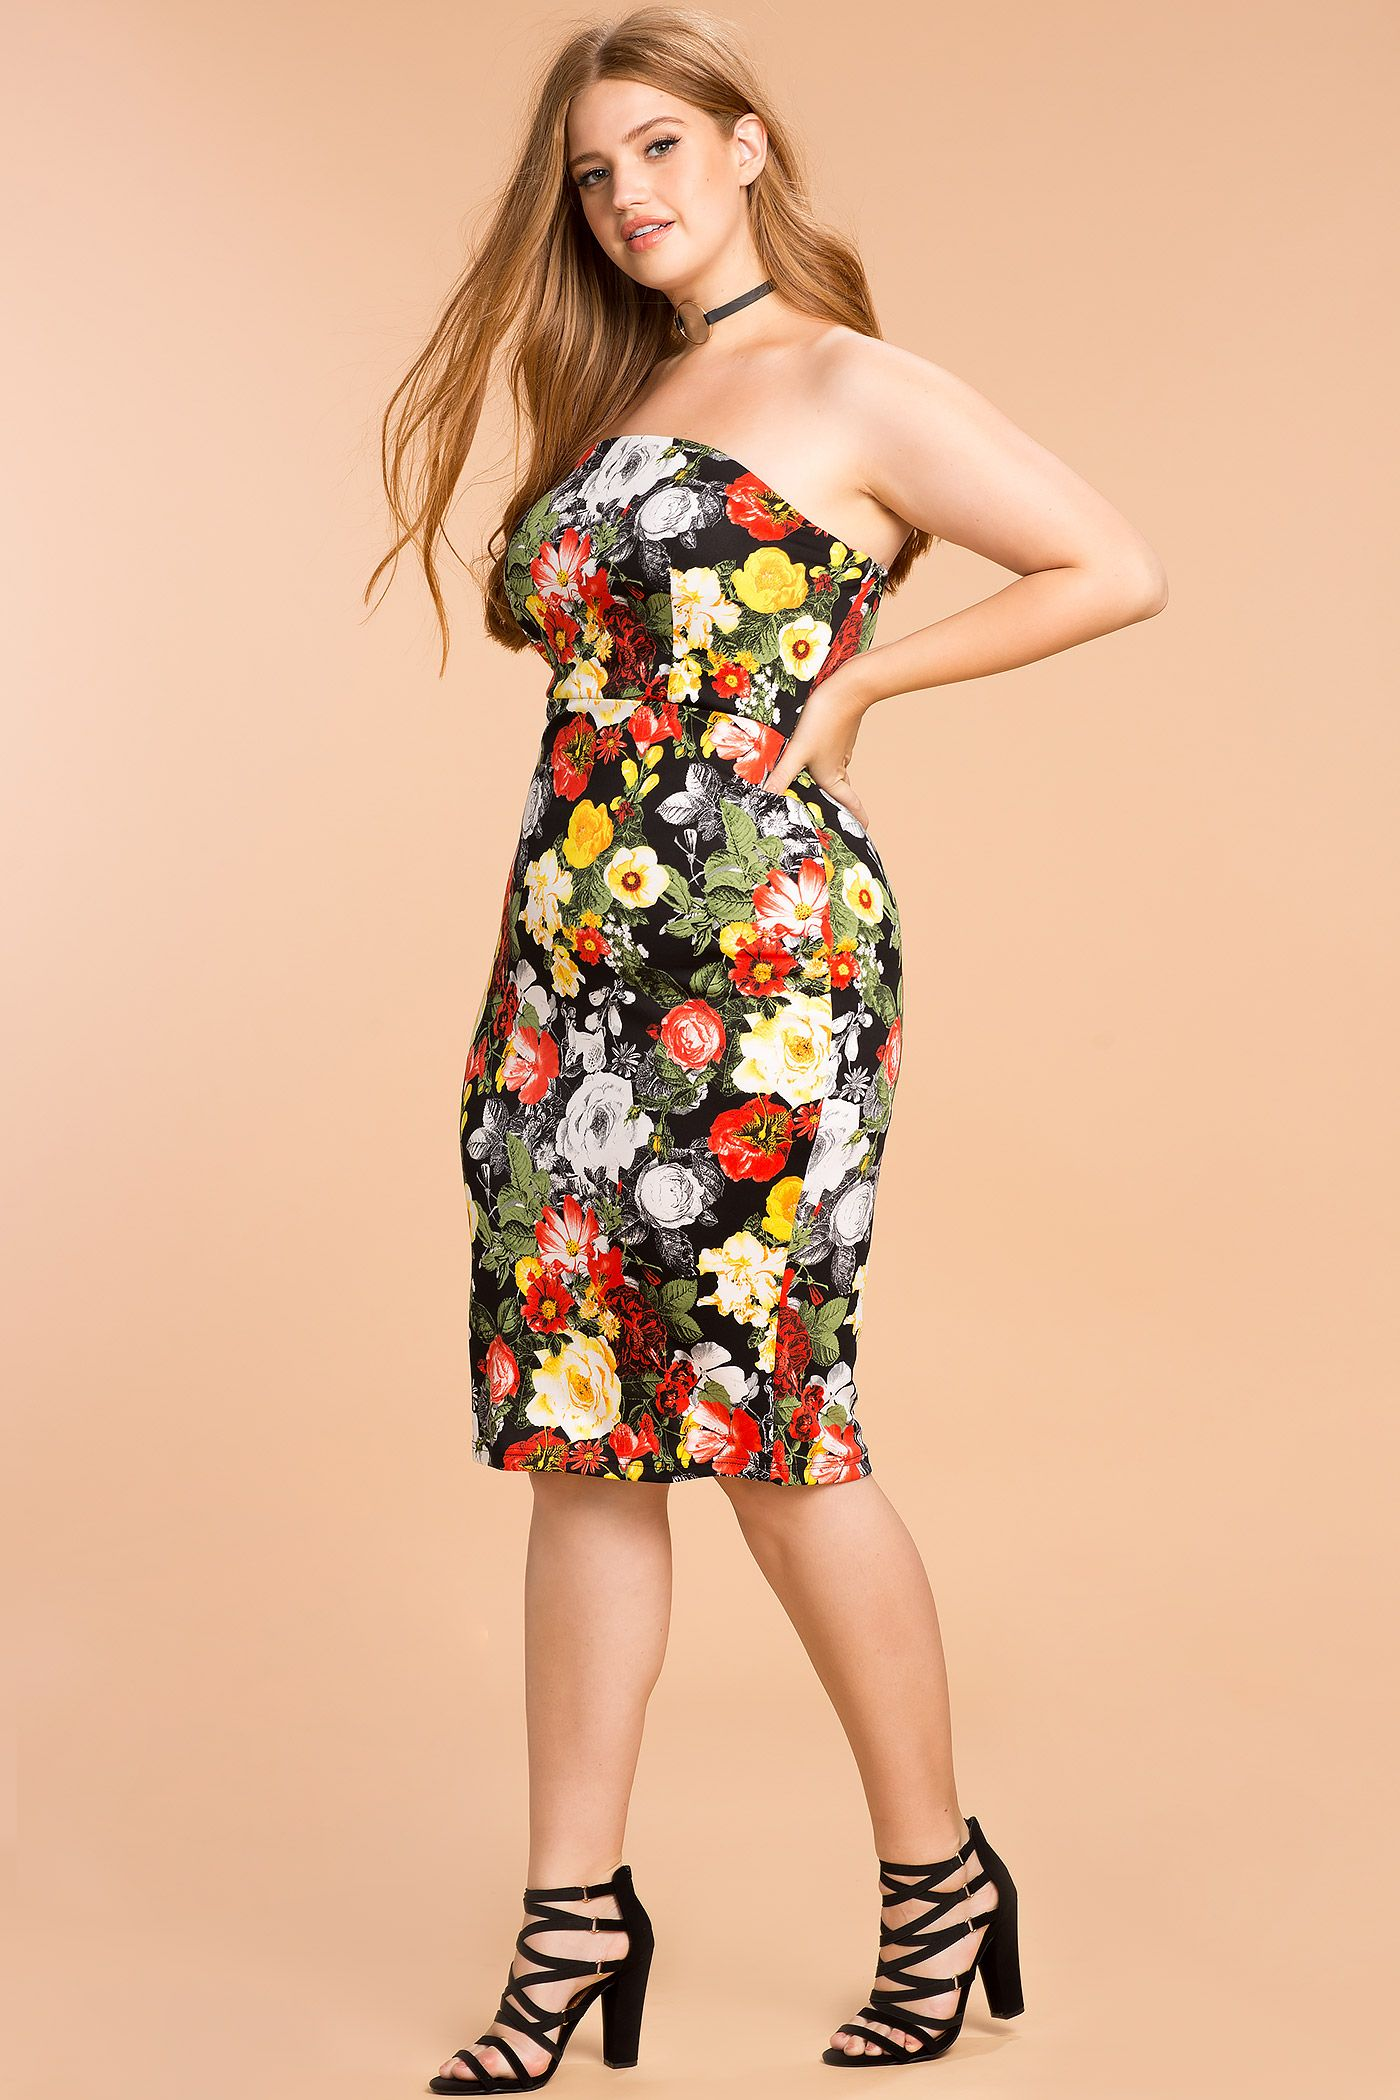 Womens Plus Size Bodycon Dresses She Knows Floral Bodycon Dress